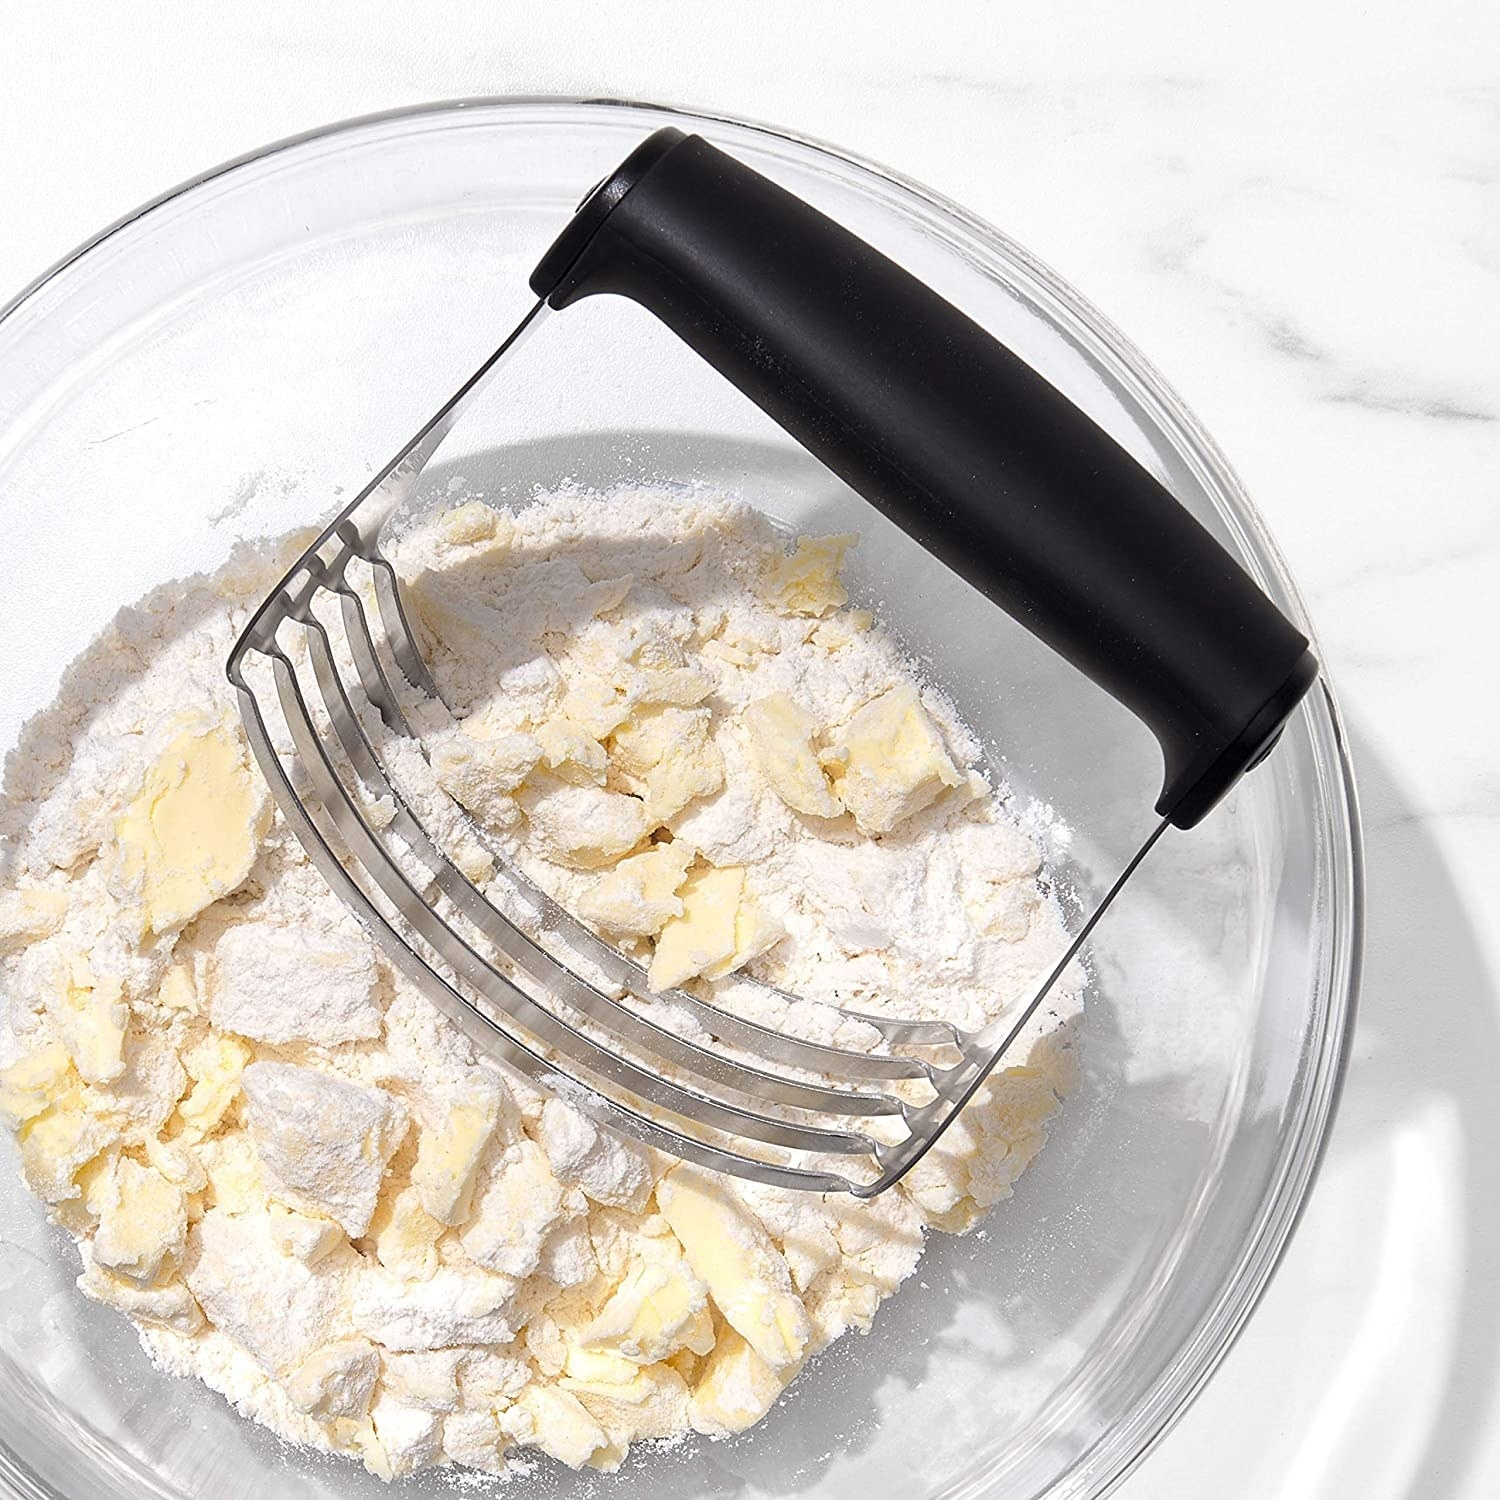 The pastry blender with a handle and five blades immersed in a bowl of flour